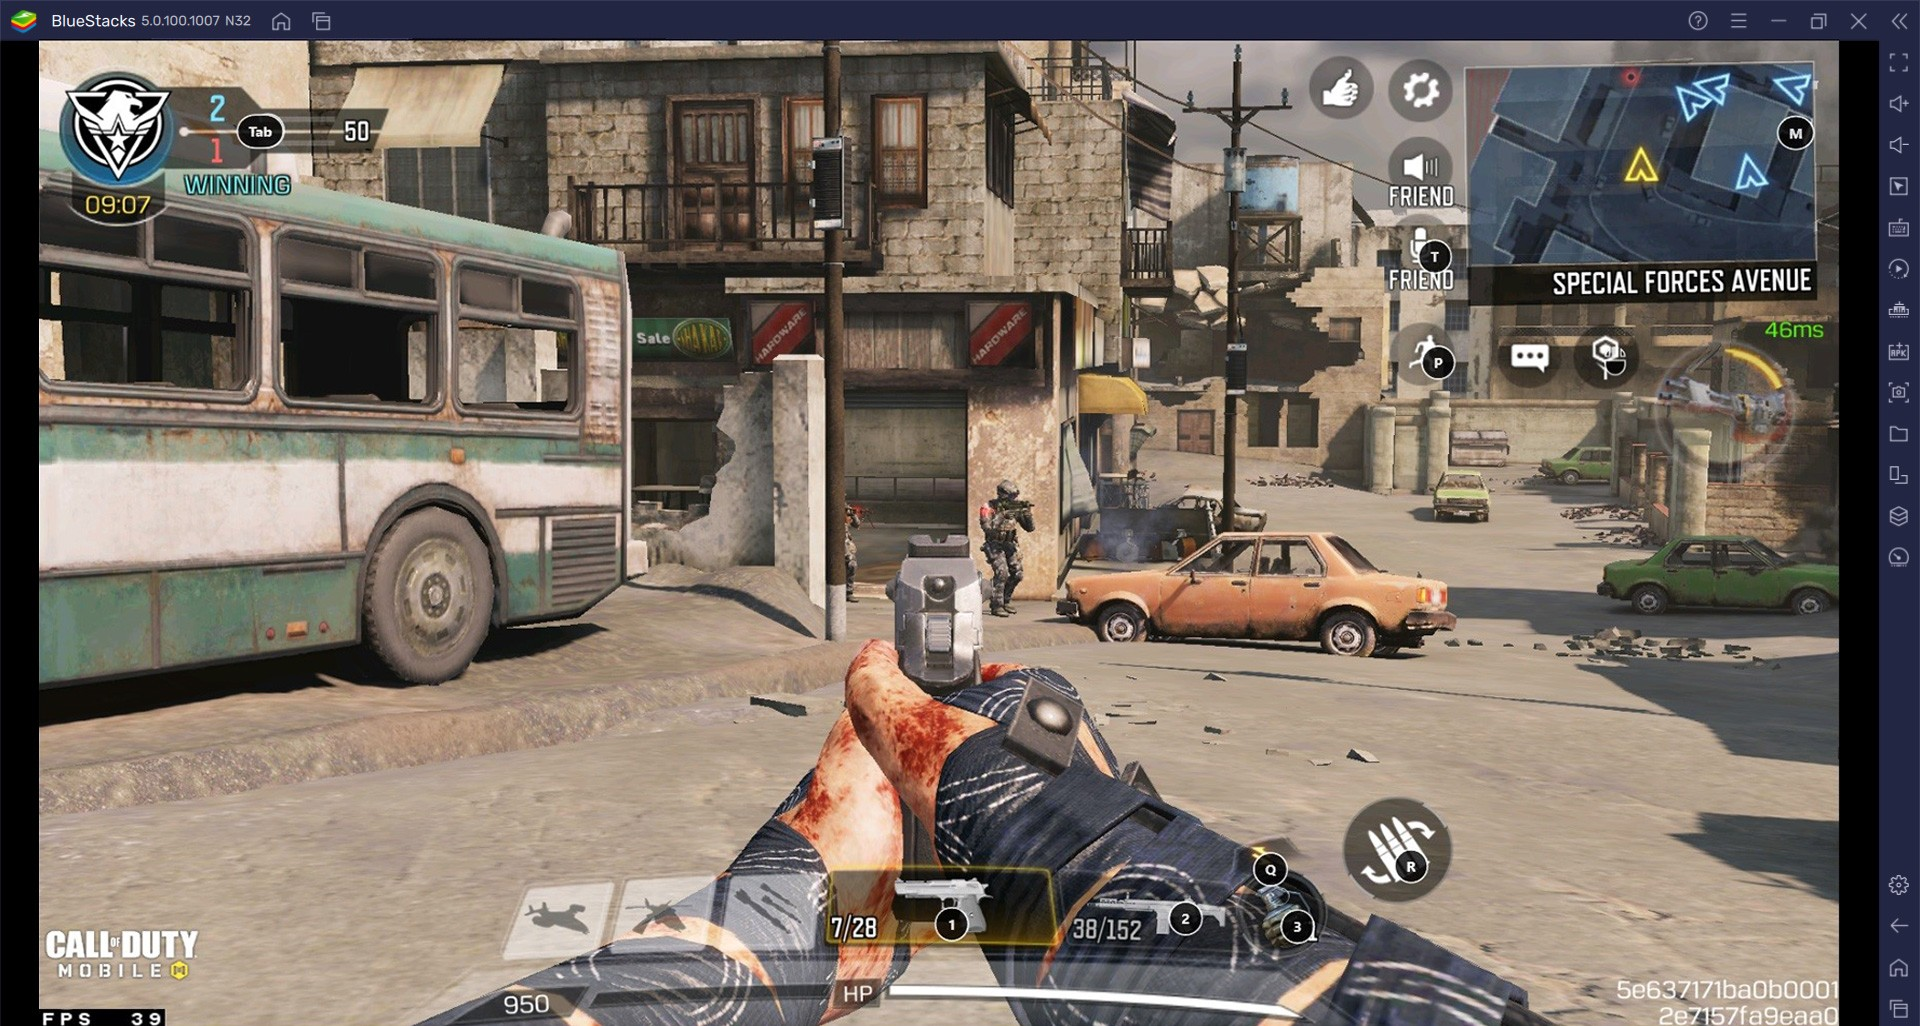 Call of Duty: Mobile Weapon Guide – The .50 GS is Your Secondary